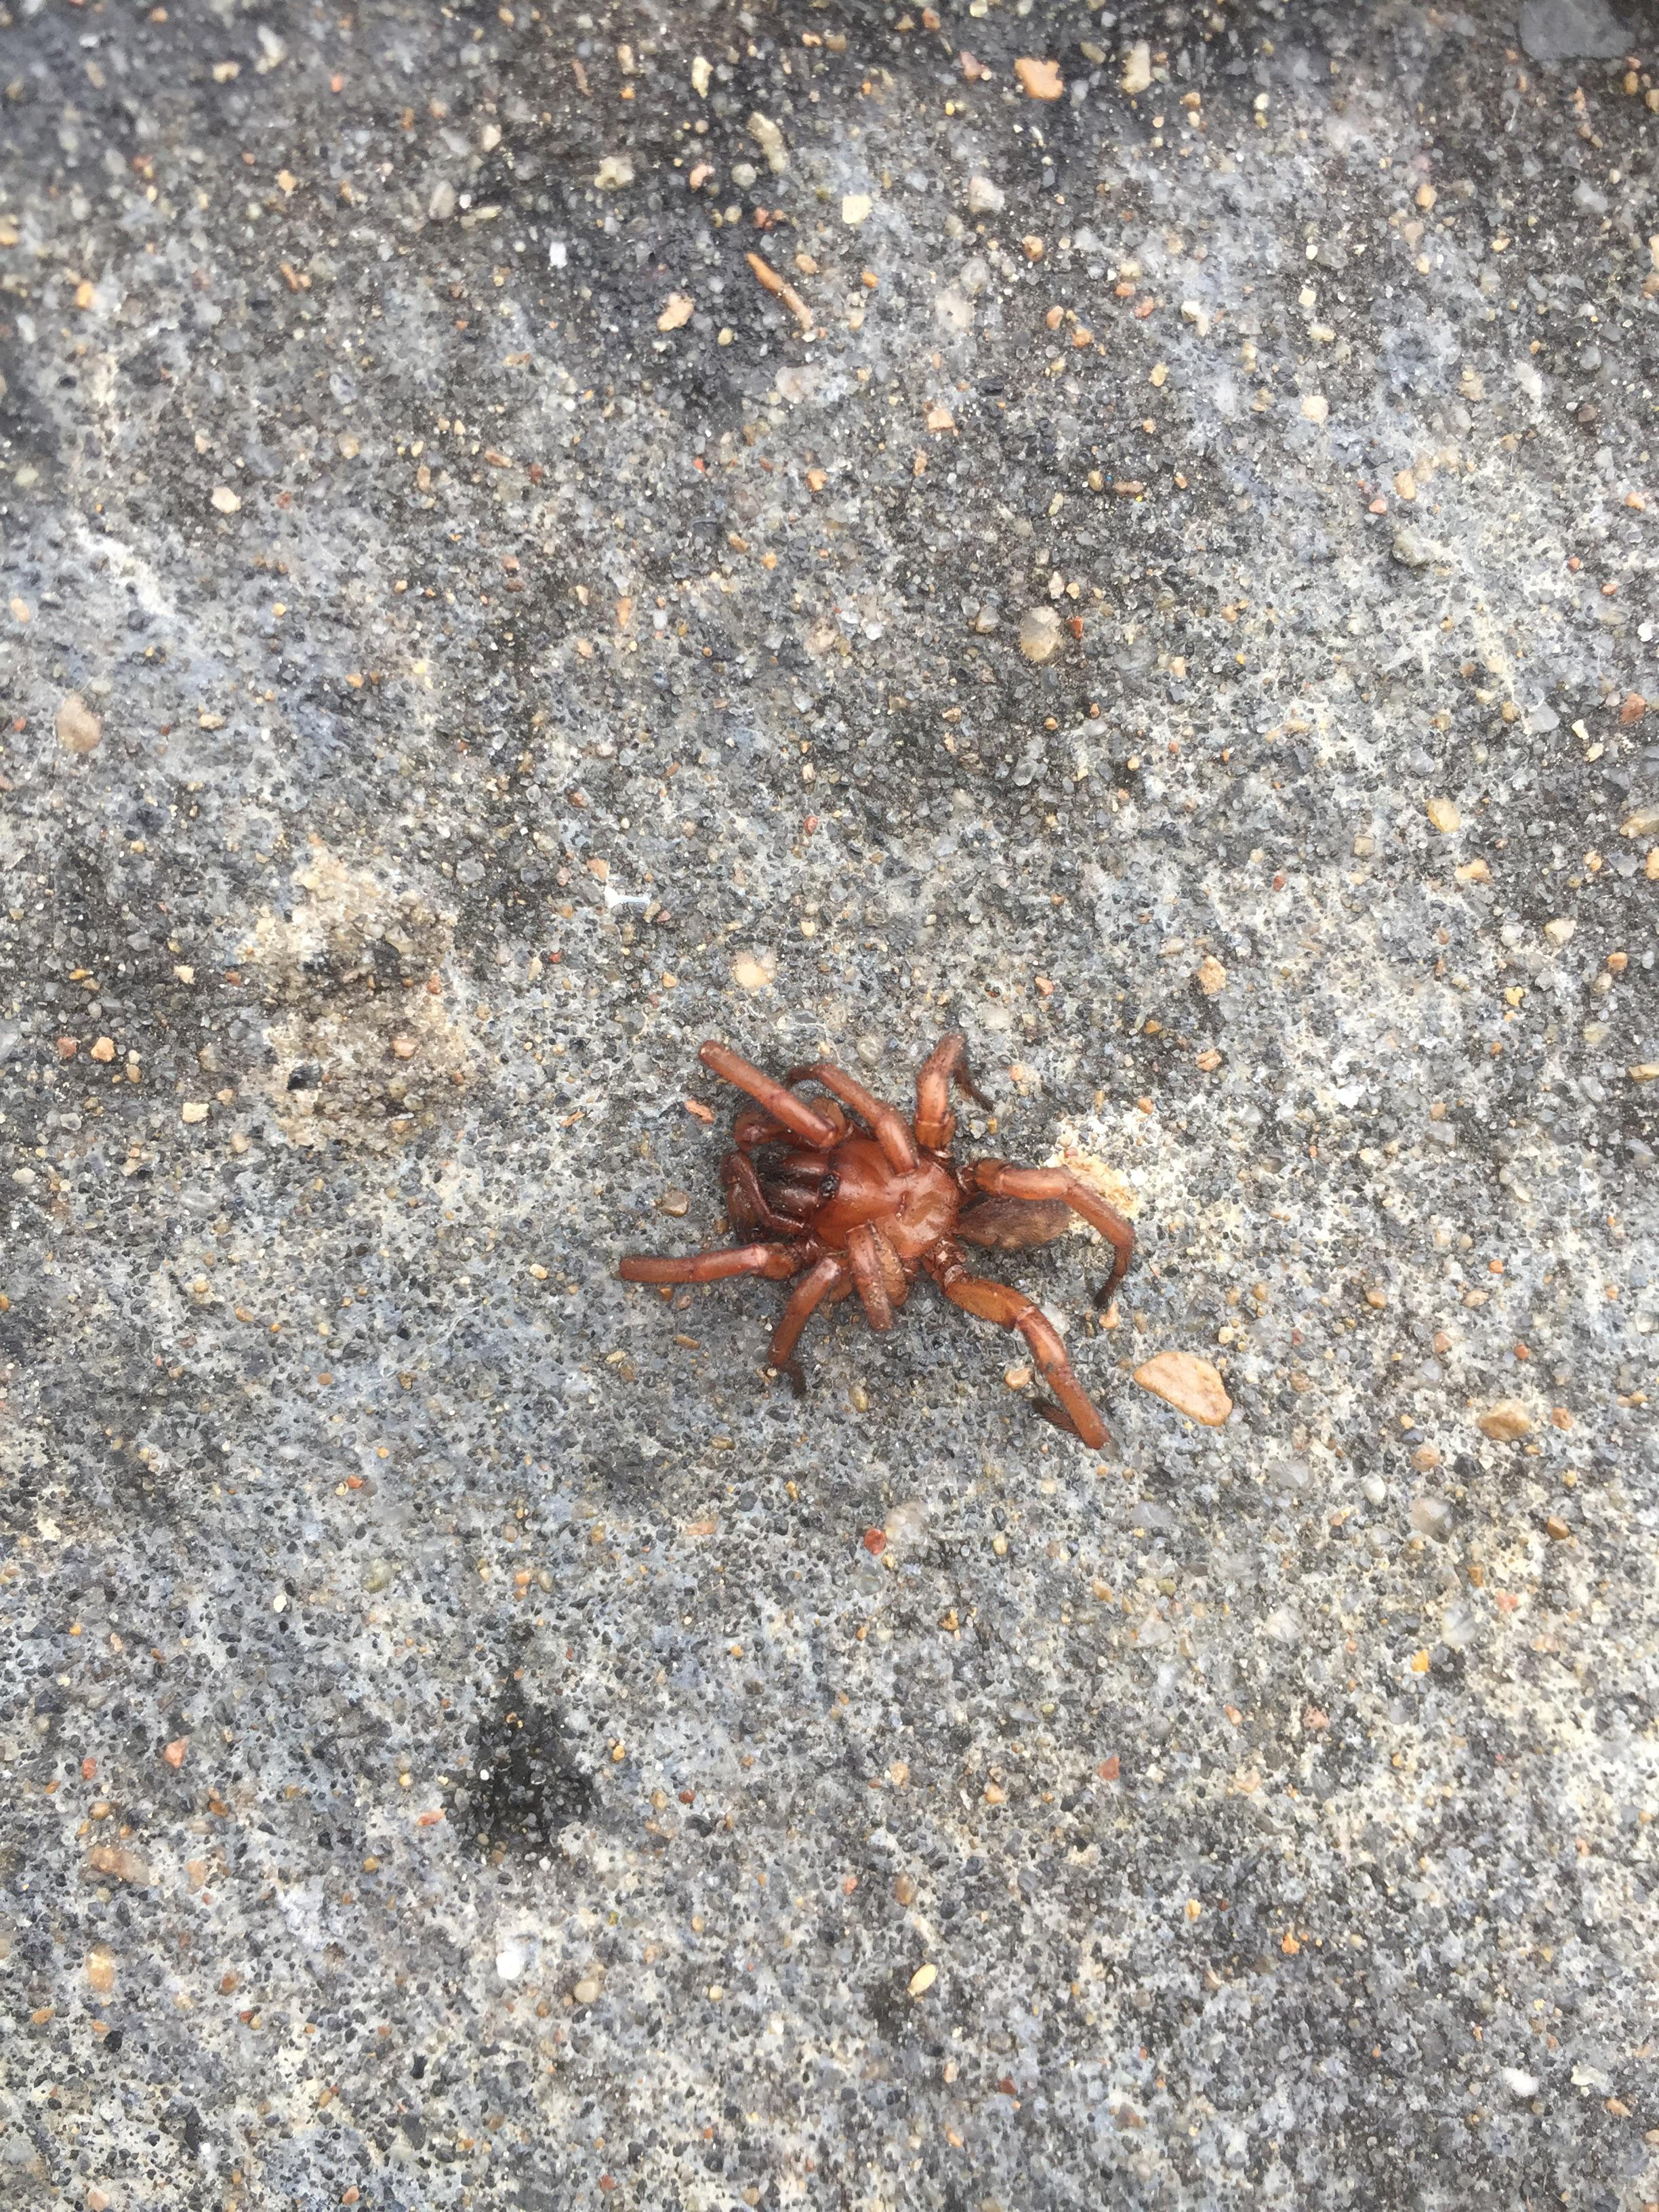 Found This Poor Little Spider Bro Outside Of Work This